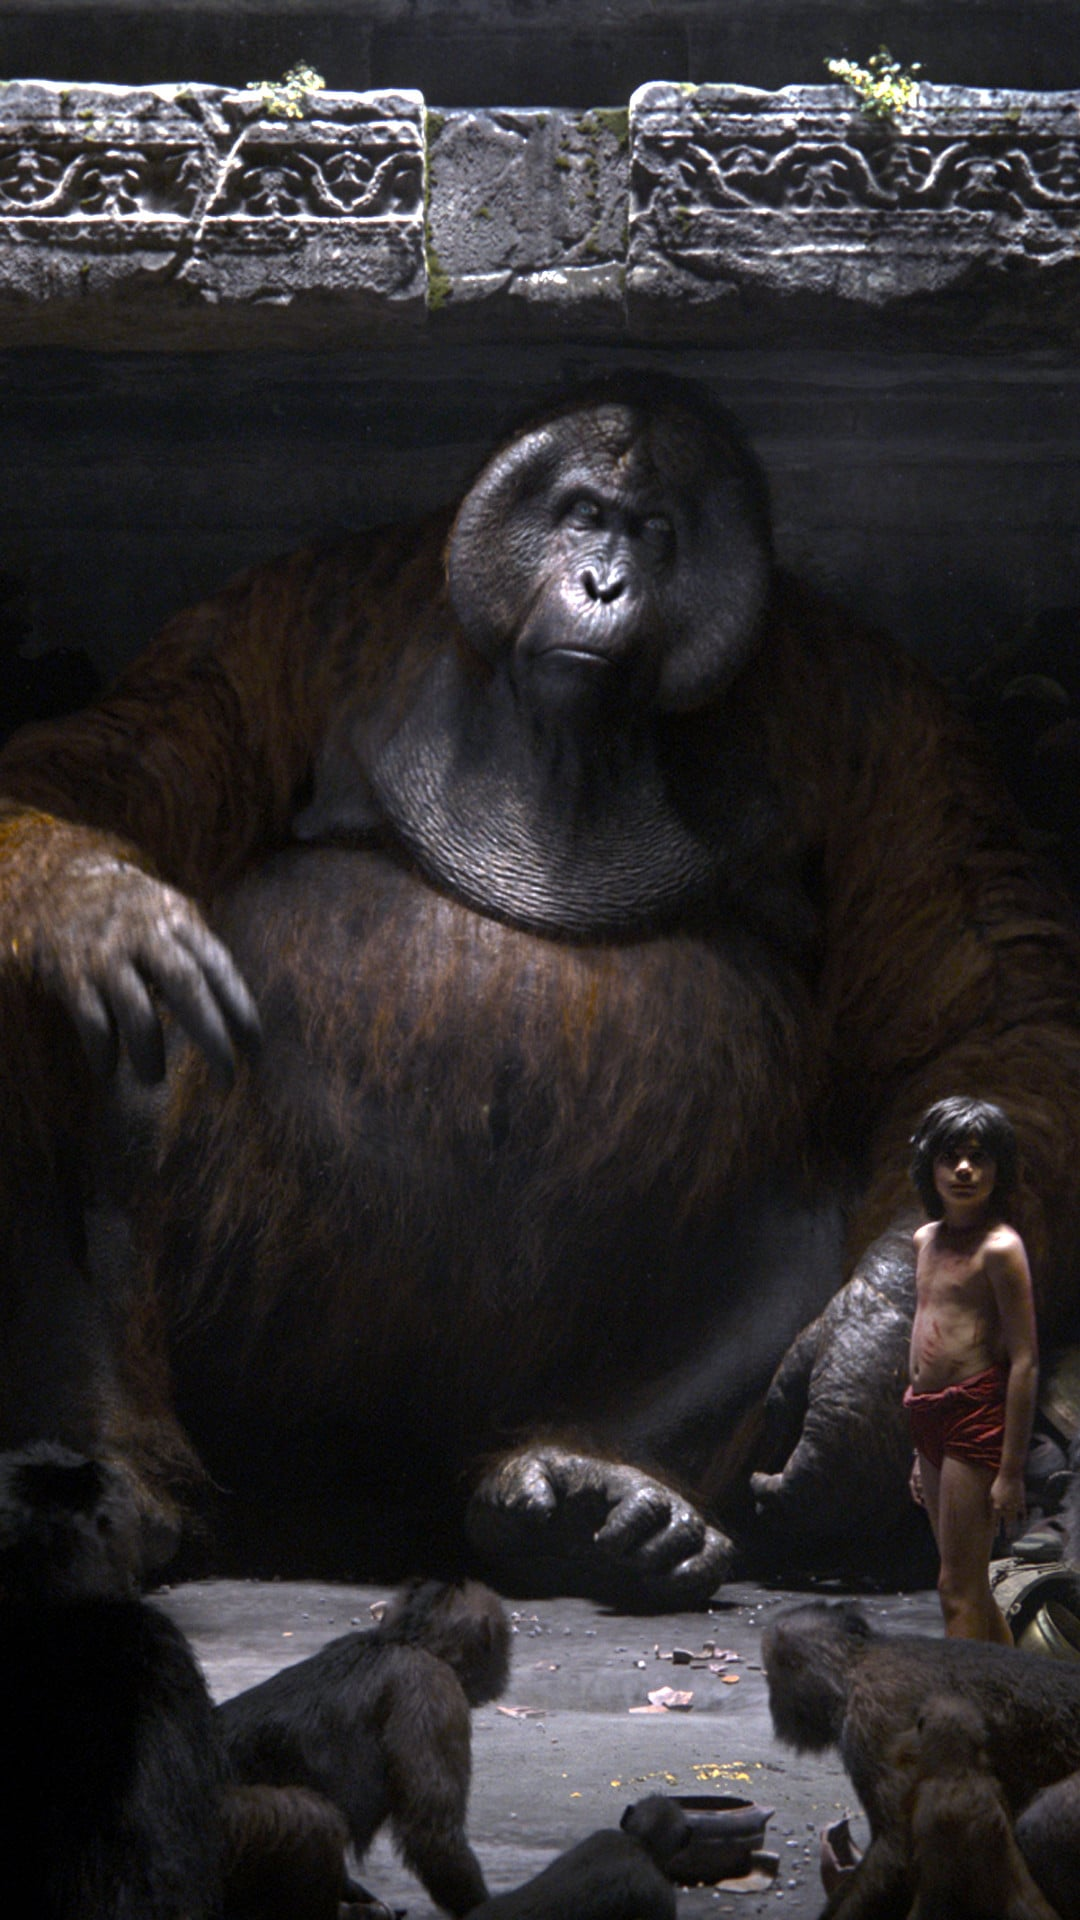 Animated Jungle Wallpaper The Jungle Book 2016 Movie Wallpapers For Iphone Apple Lives